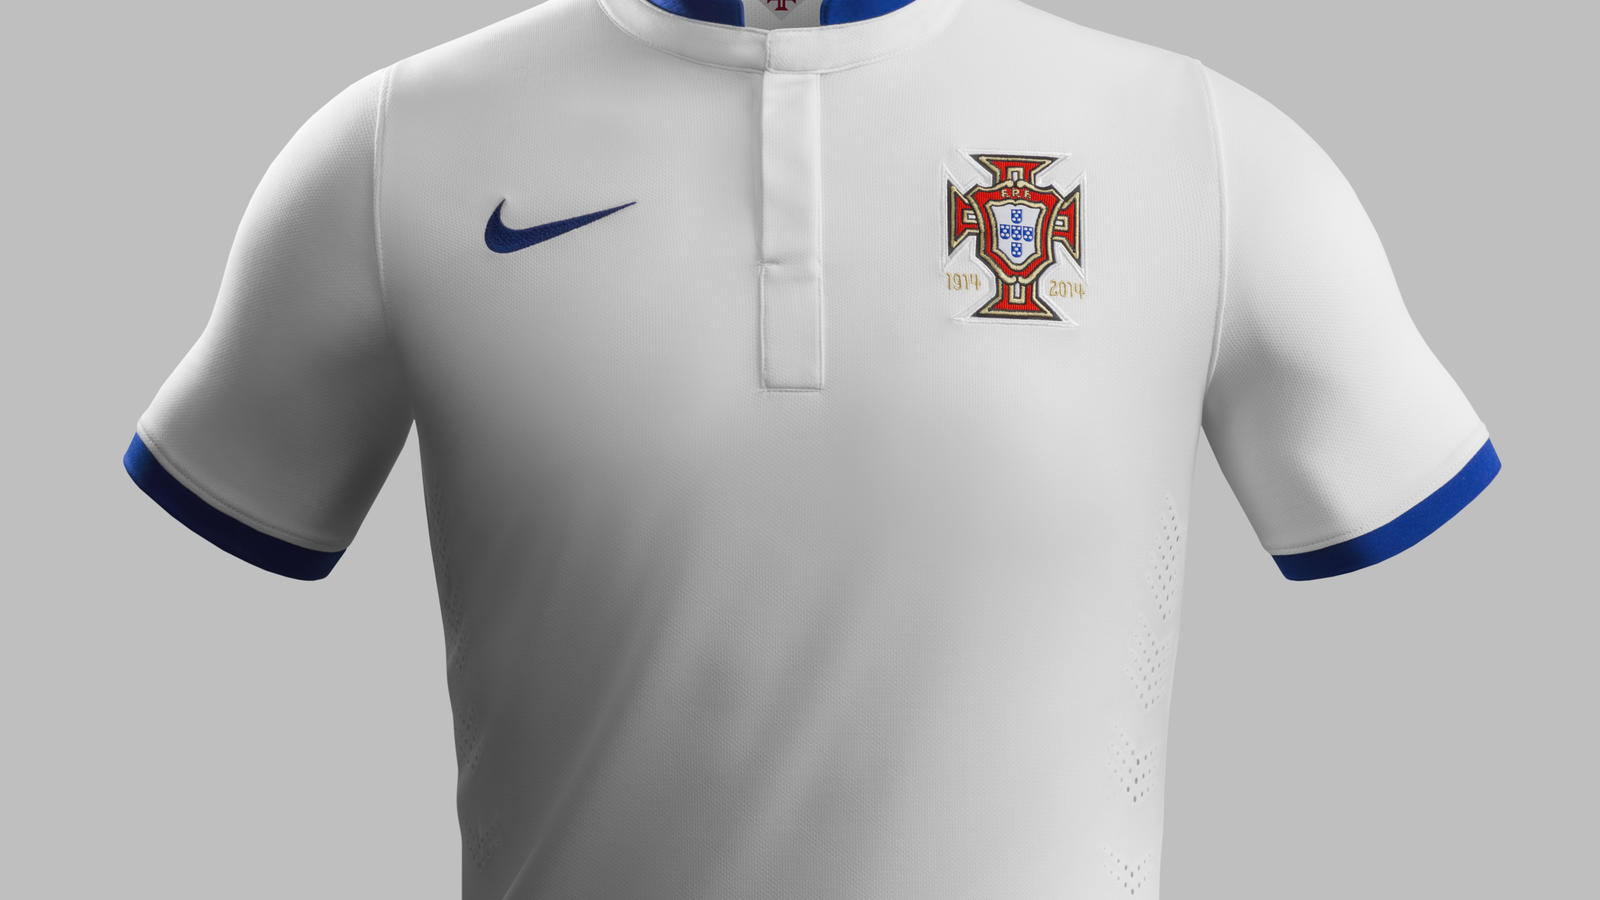 Buy nike portugal soccer jersey - 54% OFF! Share discount 3cabd3fe8